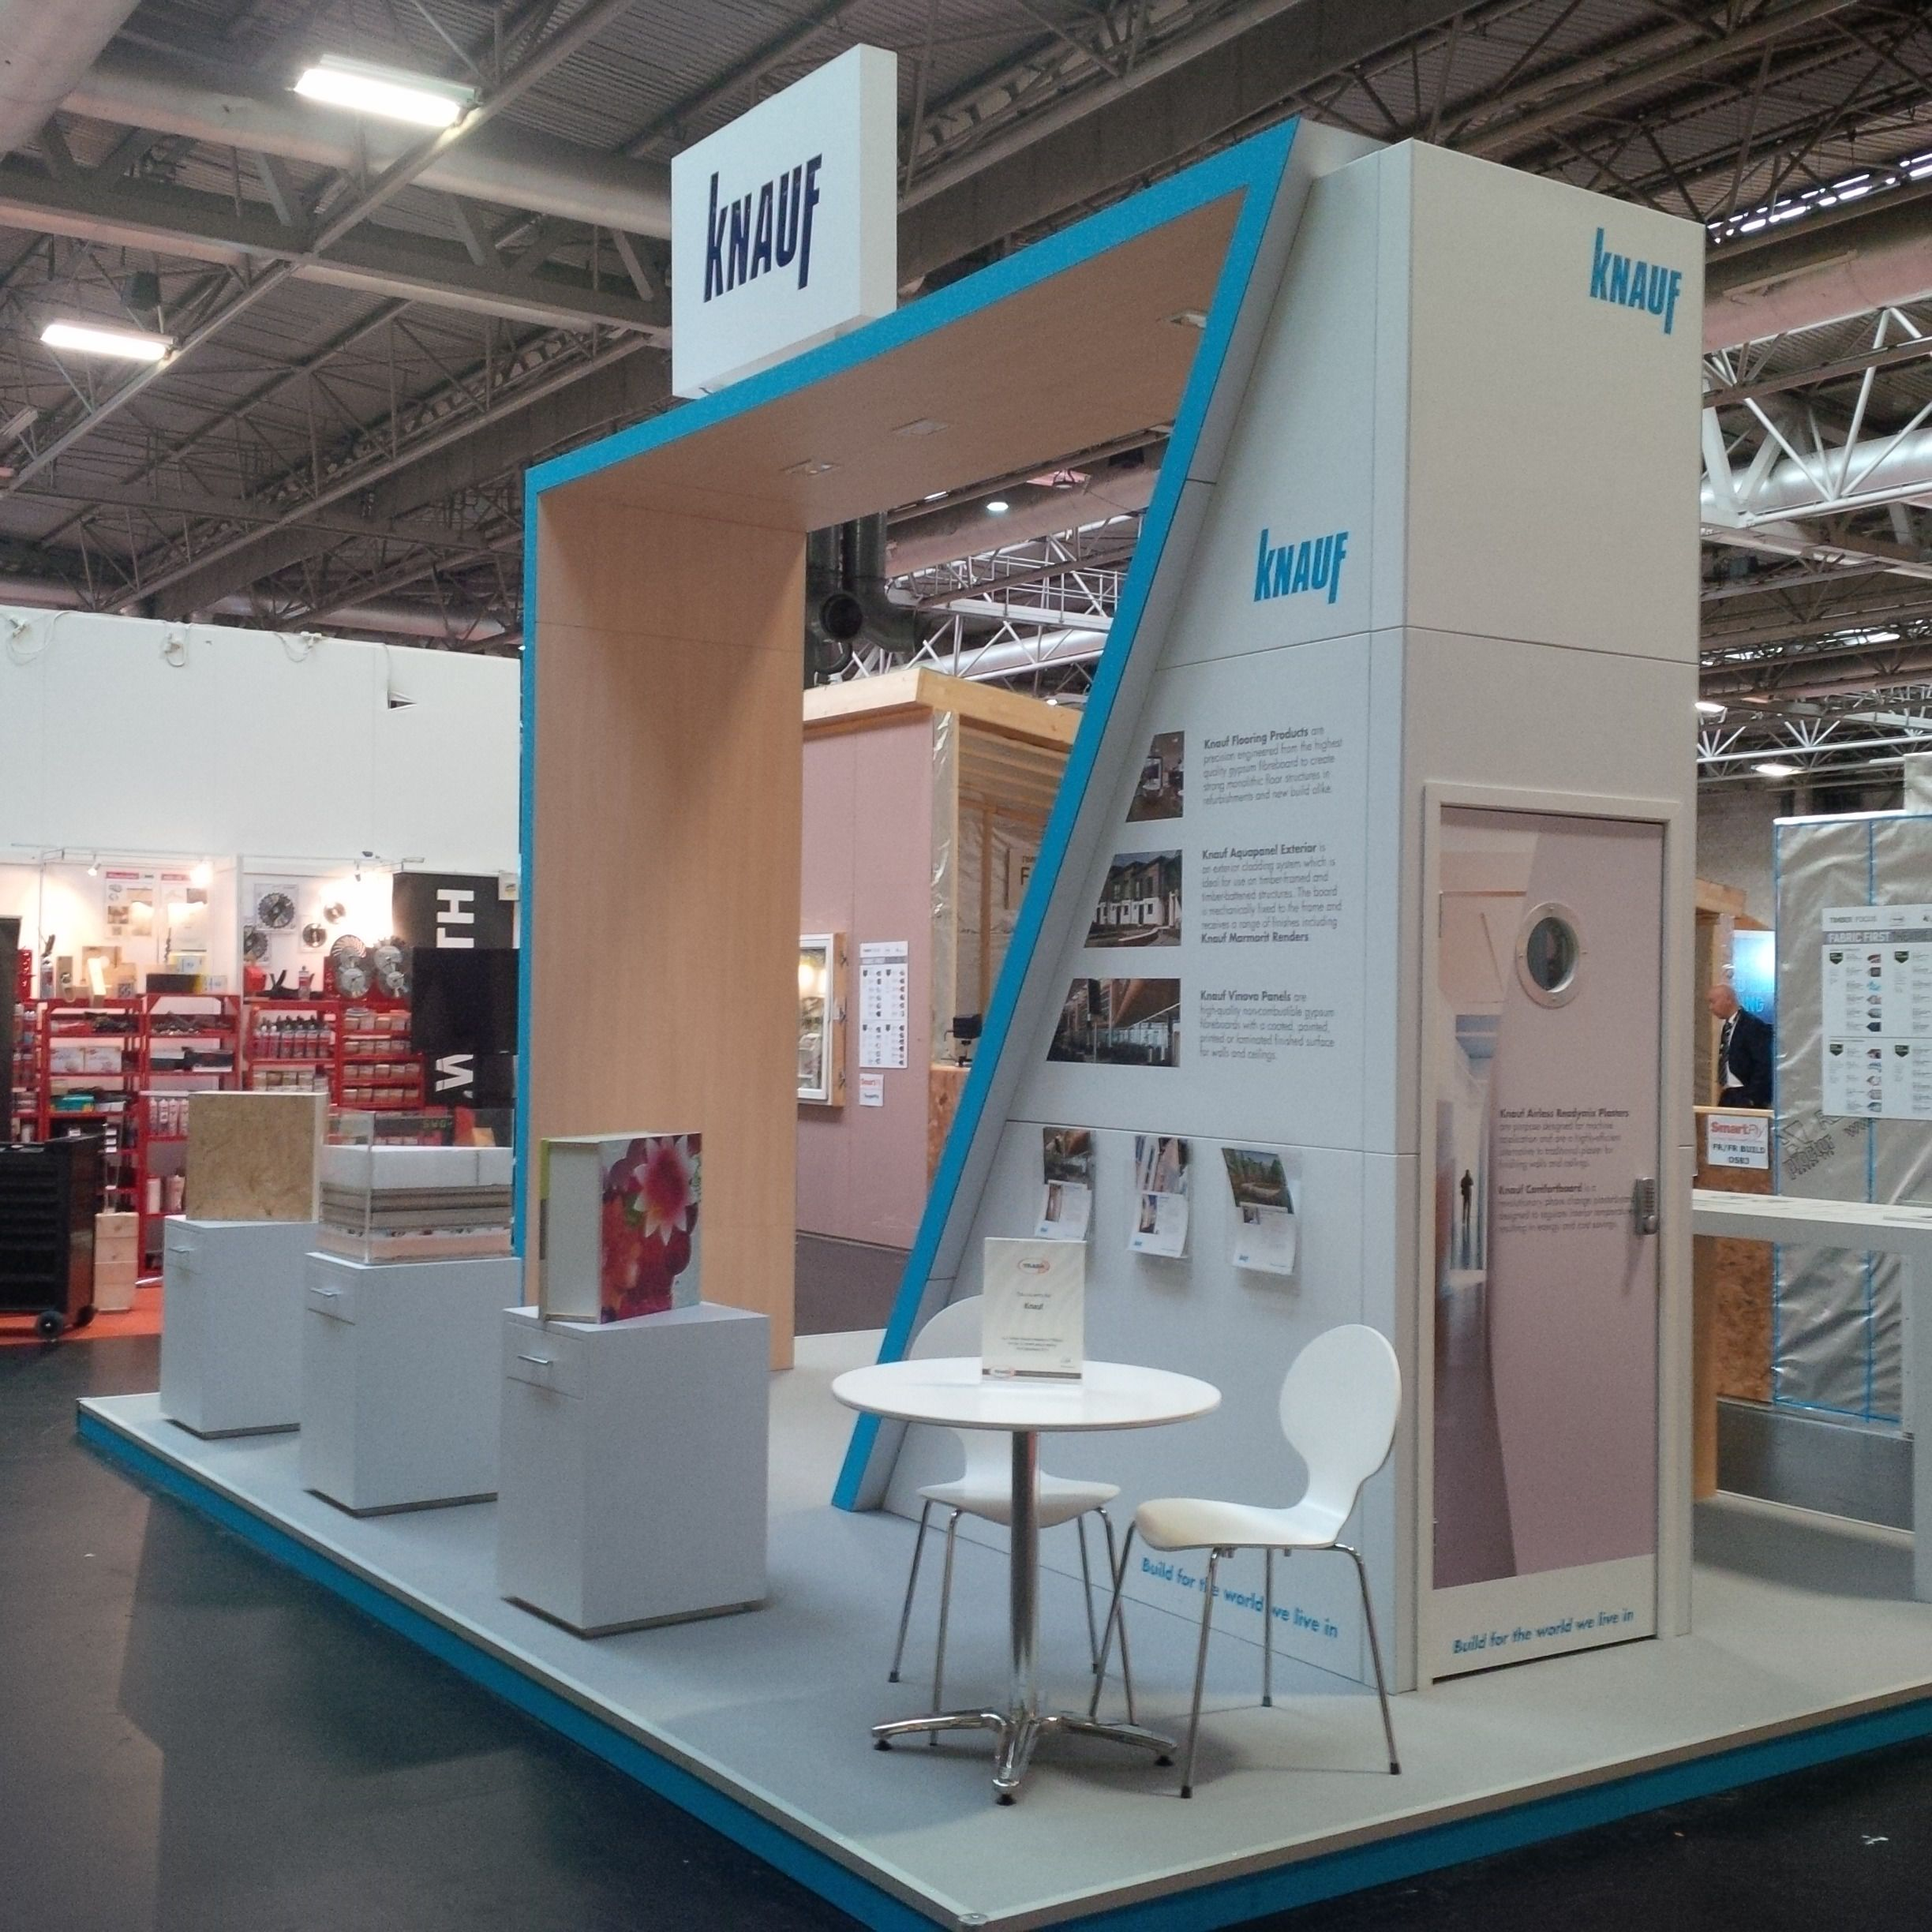 Exhibition Stand Display Ideas : Timberexpo day two knauf uk stand exhibition